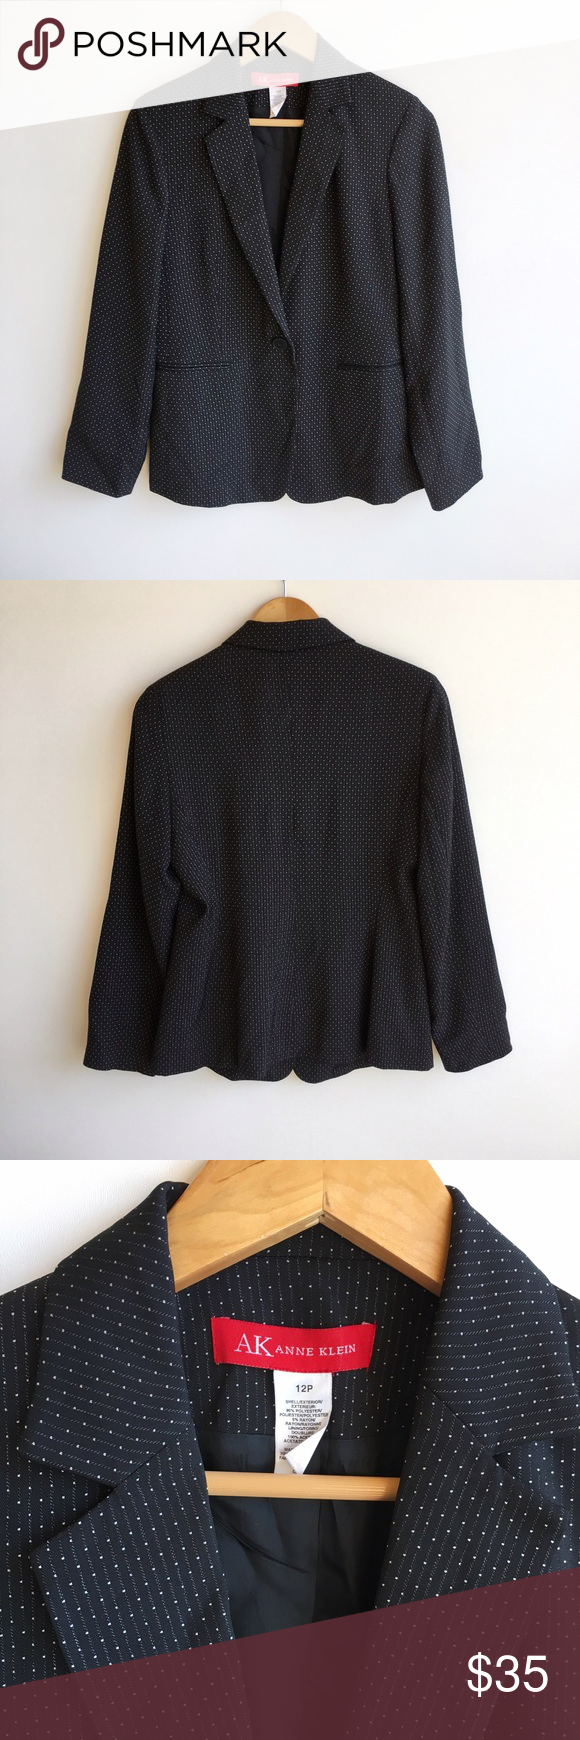 """AK Anne Klein Black and White Blazer Size 12 Beautiful AK Anne Klein Black and White Blazer. Size 12. Two putter pockets. Chest is 19"""" from pit to pit. Length is 28"""" long. Excellent condition. No stains or flaws. Anne Klein Jackets & Coats Blazers"""